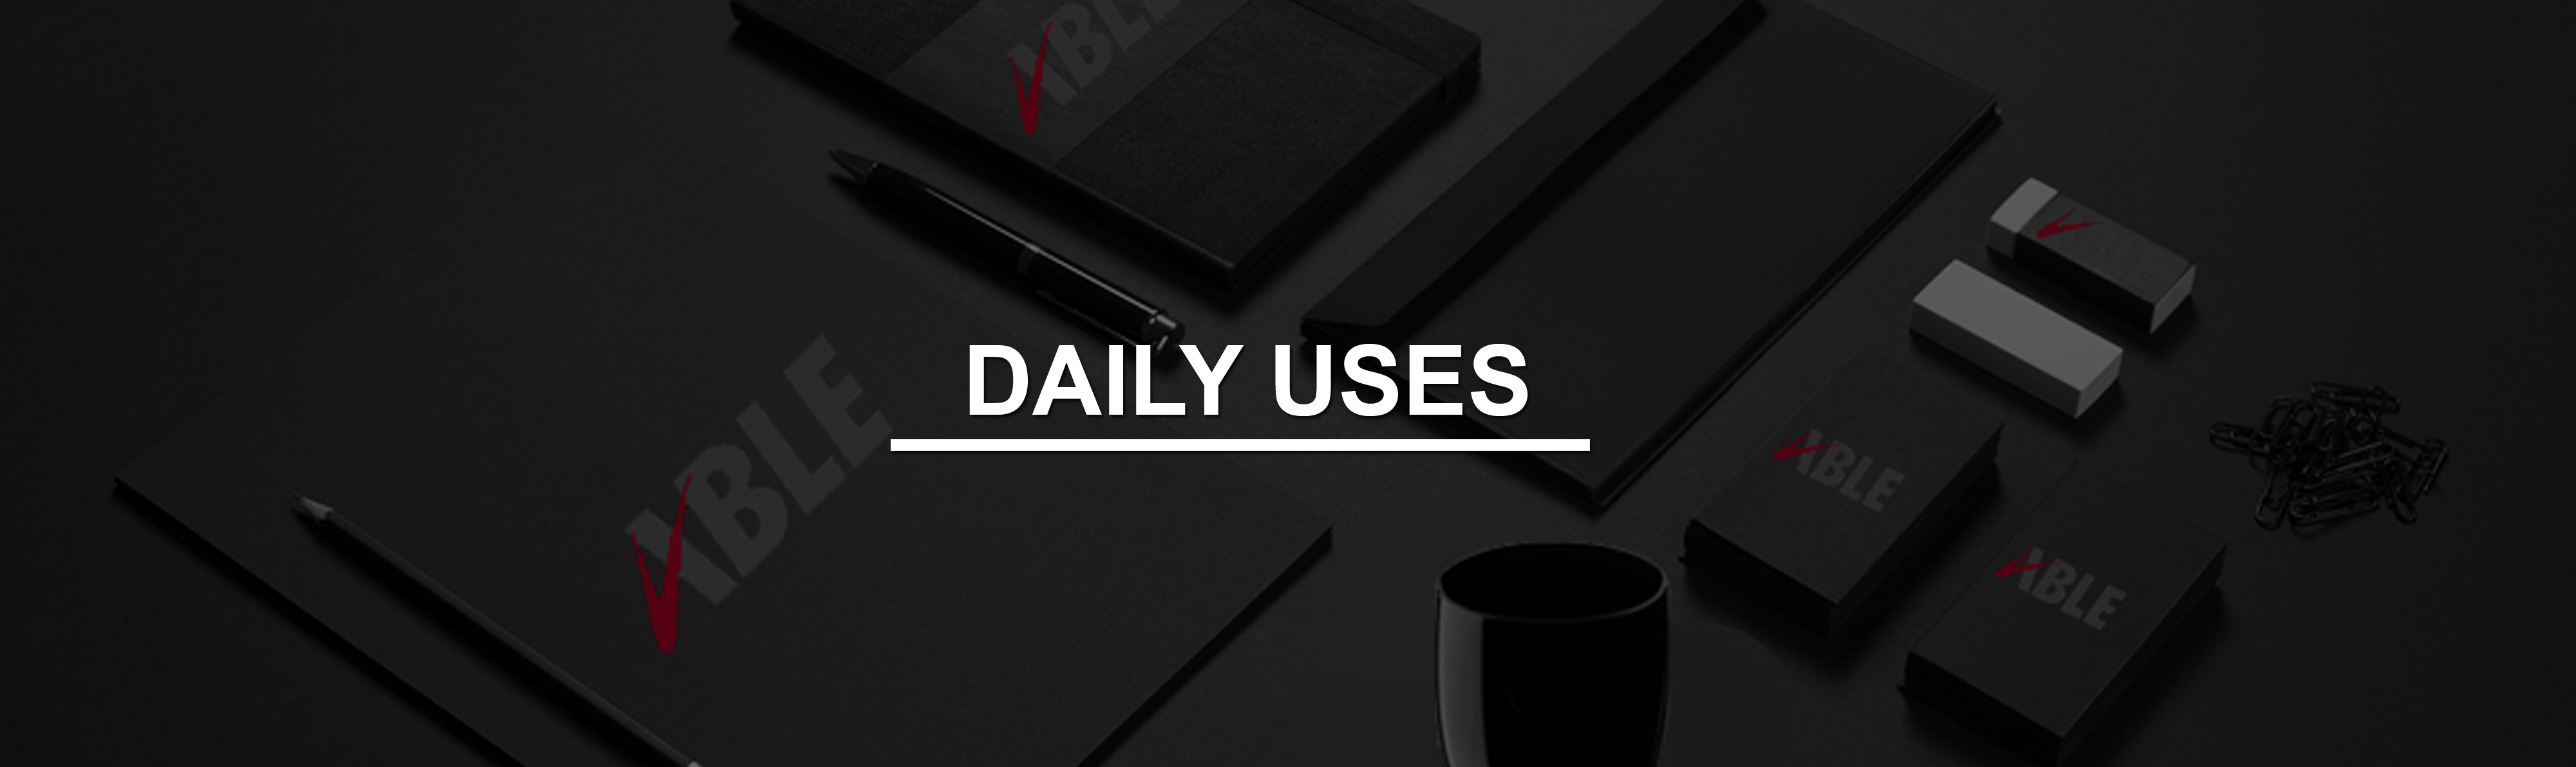 DAILY USES